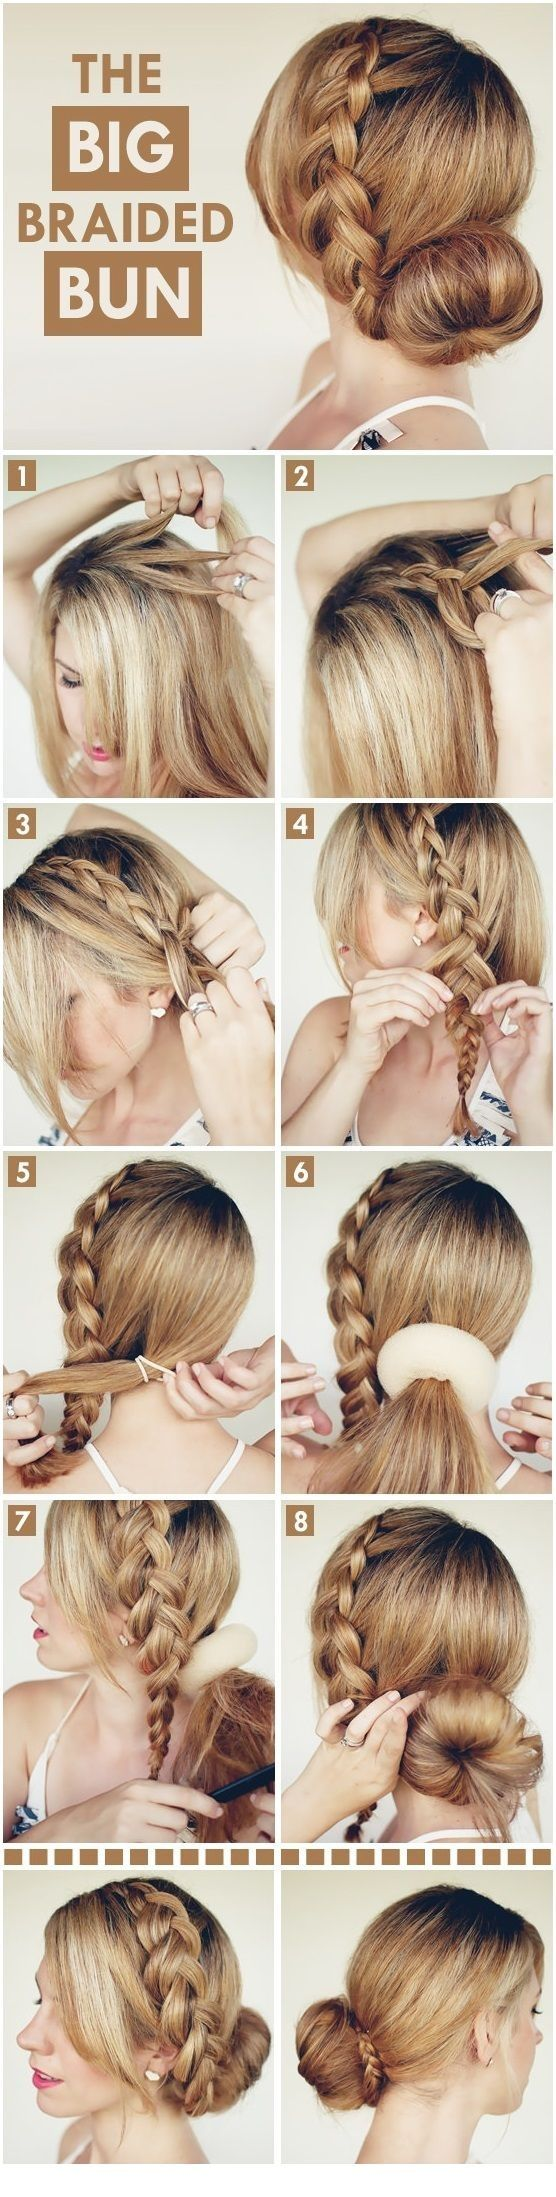 Seven stepbystep easy and fashionable hairstyles that would make